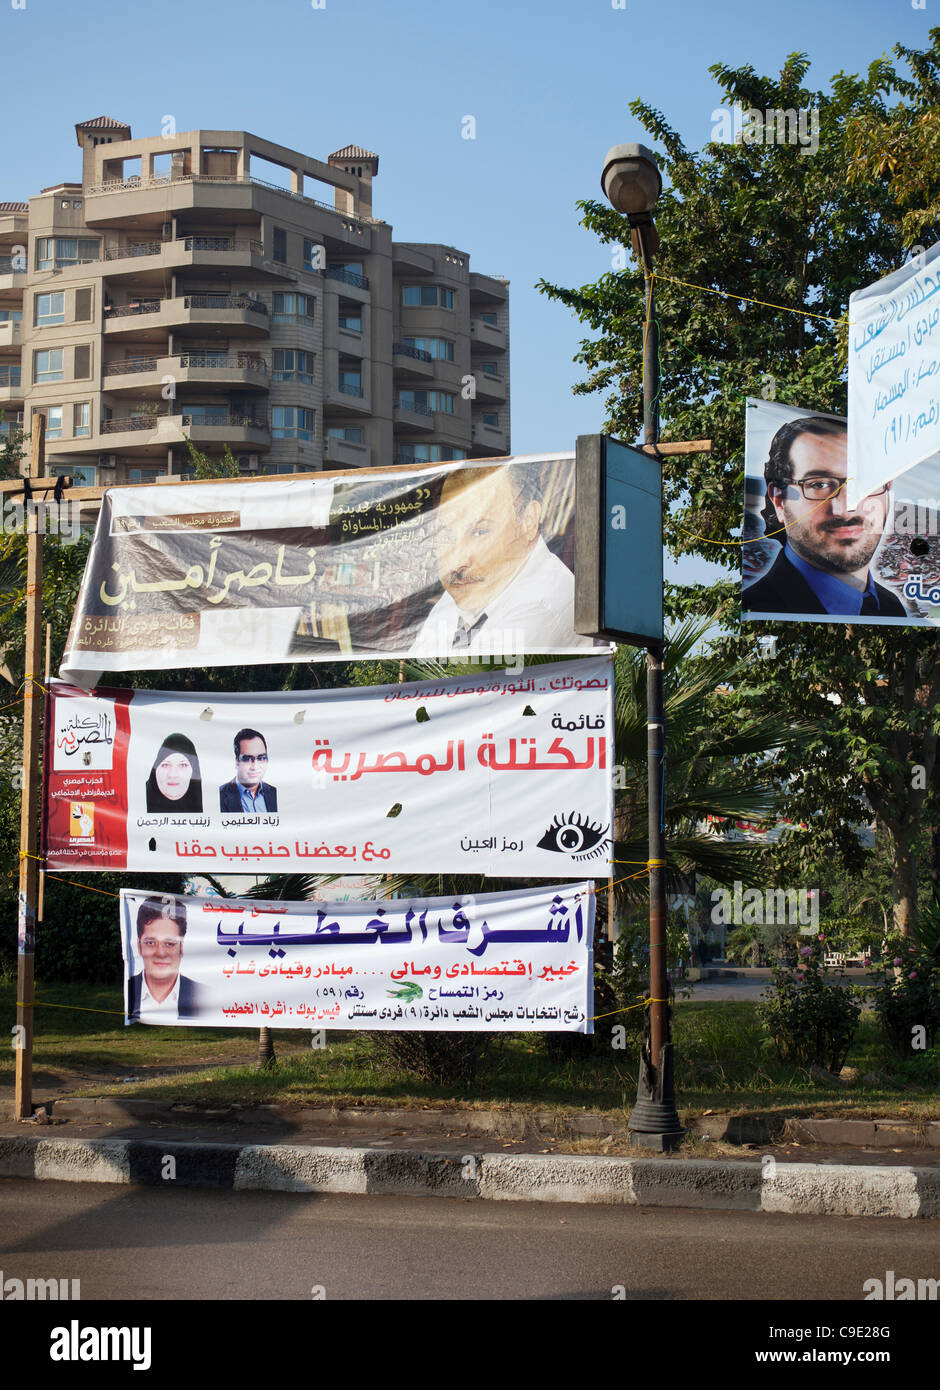 Posters of candidates up on election day 28th November 2011, Cairo, Egypt - Stock Image